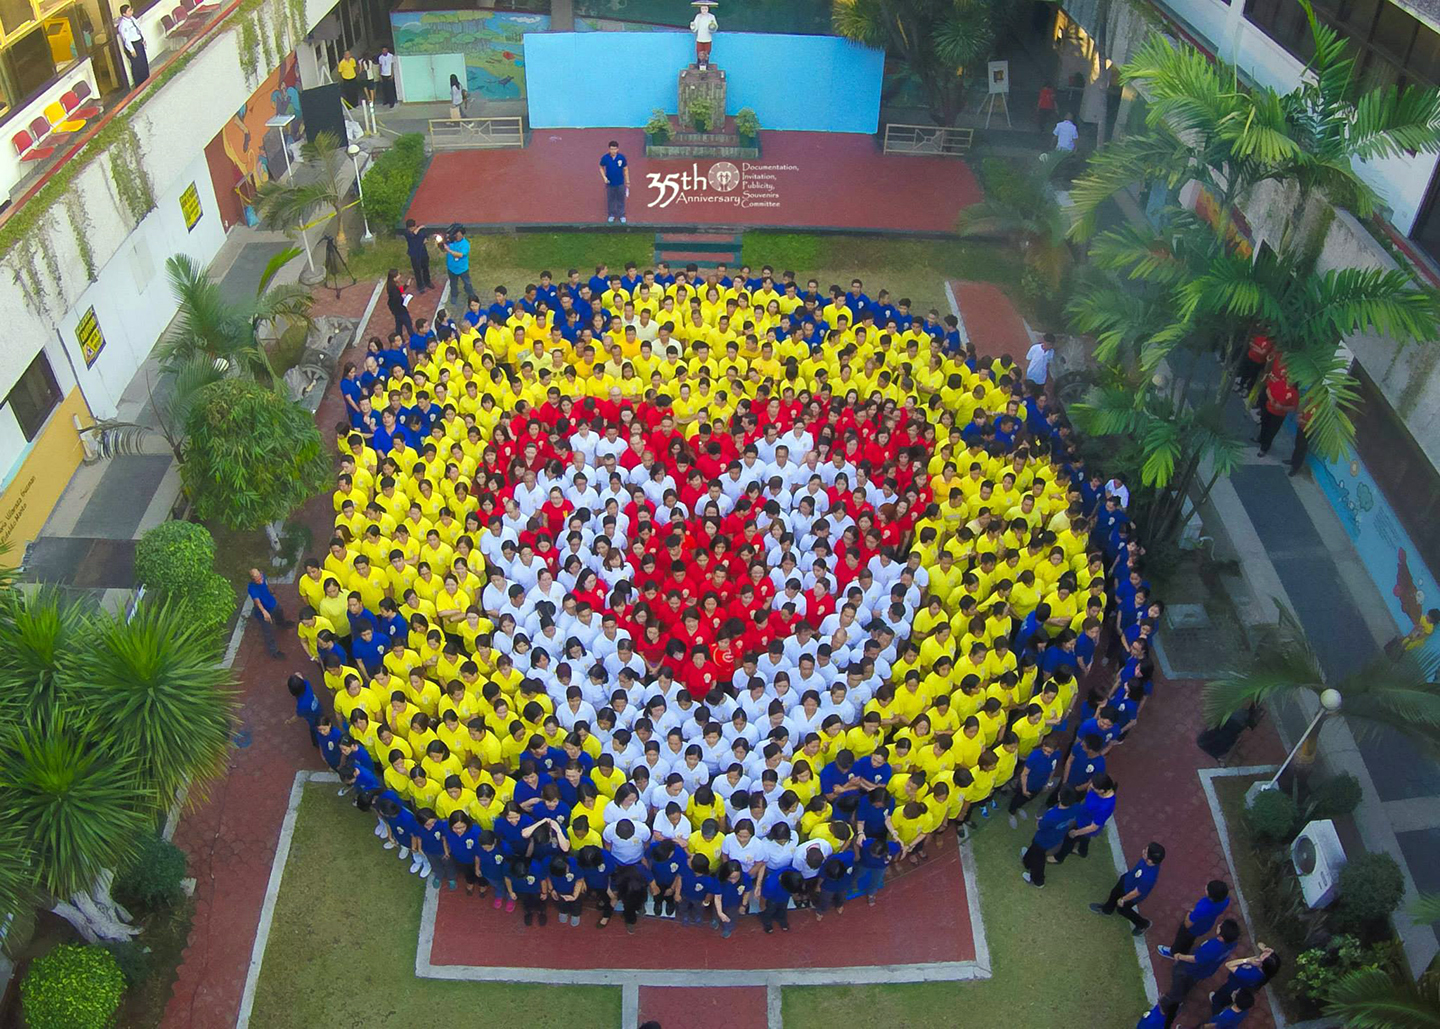 2015 March 9, PCMC Human Logo Formation by 646 employees, photograph c/o the PCMC